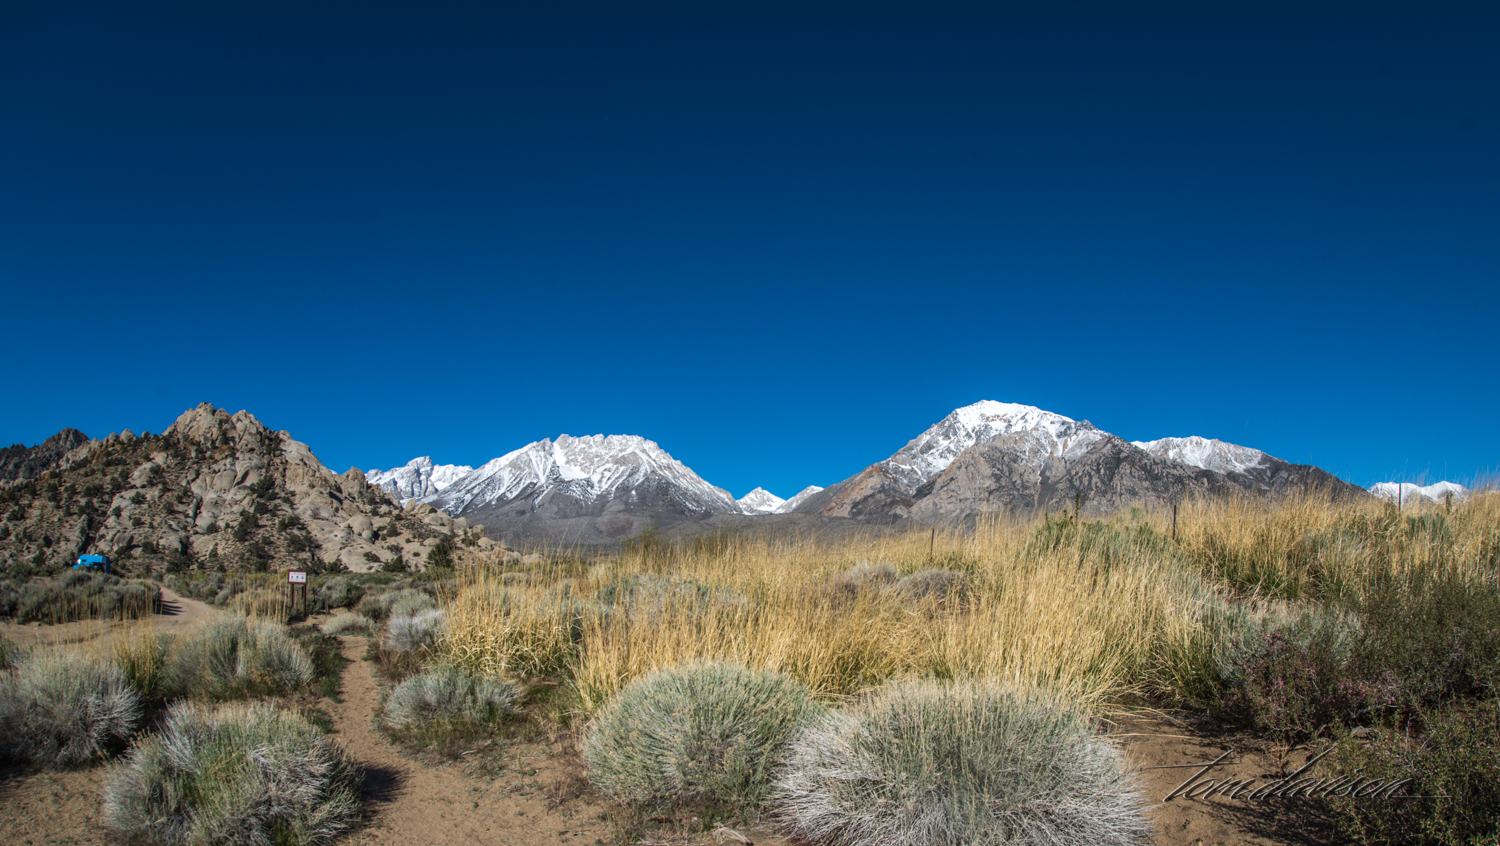 Buttermilk-4.jpg